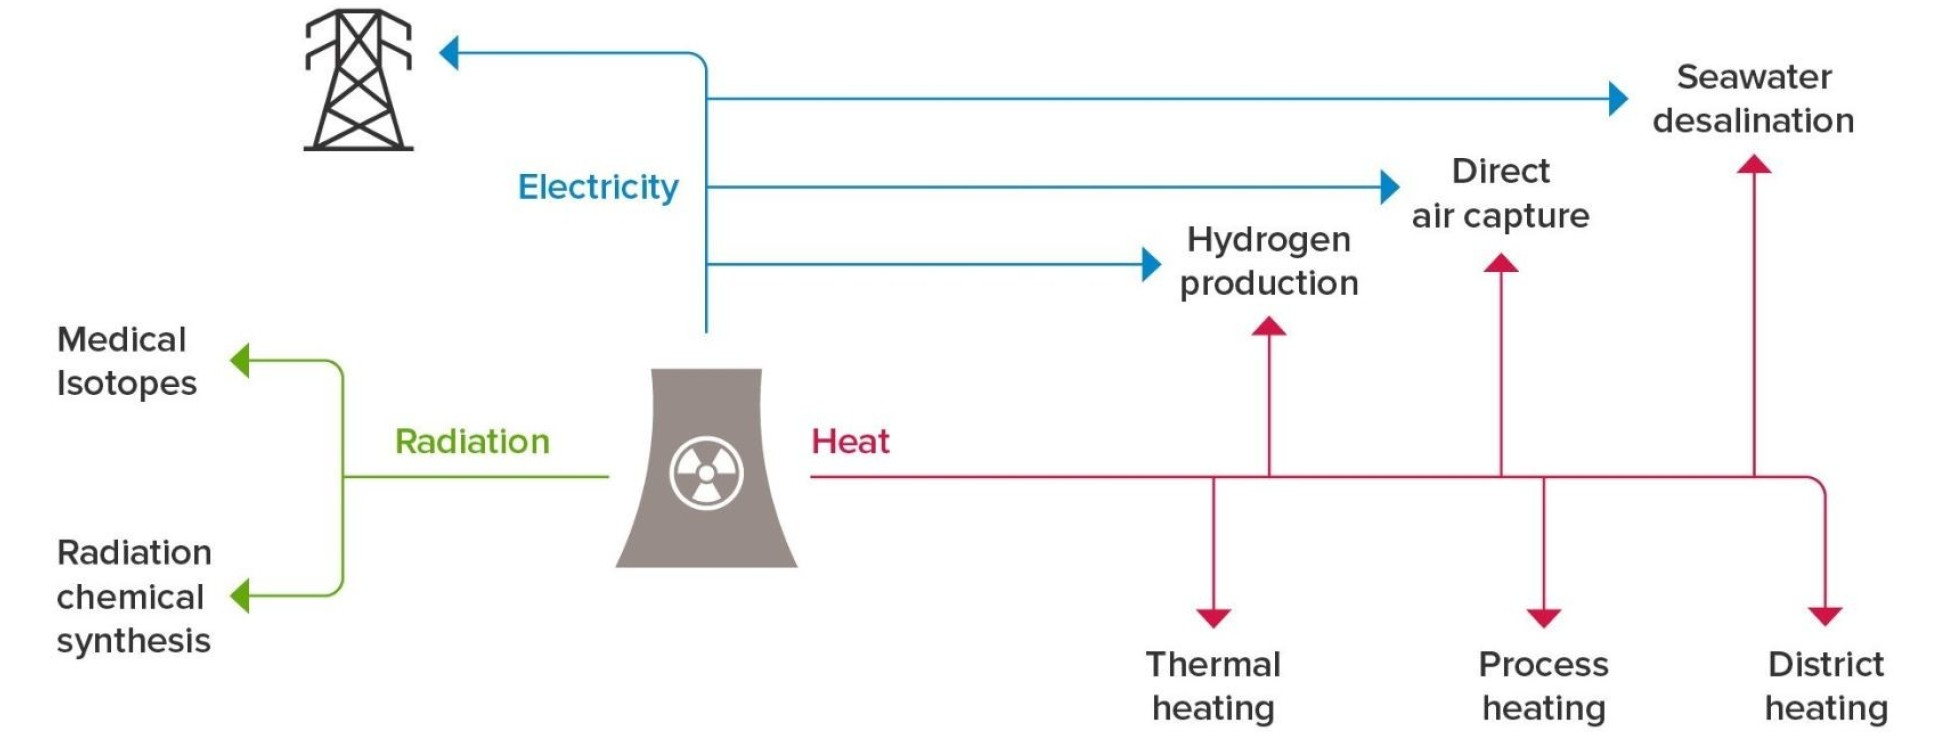 Diagram showing uses for nuclear cogeneration